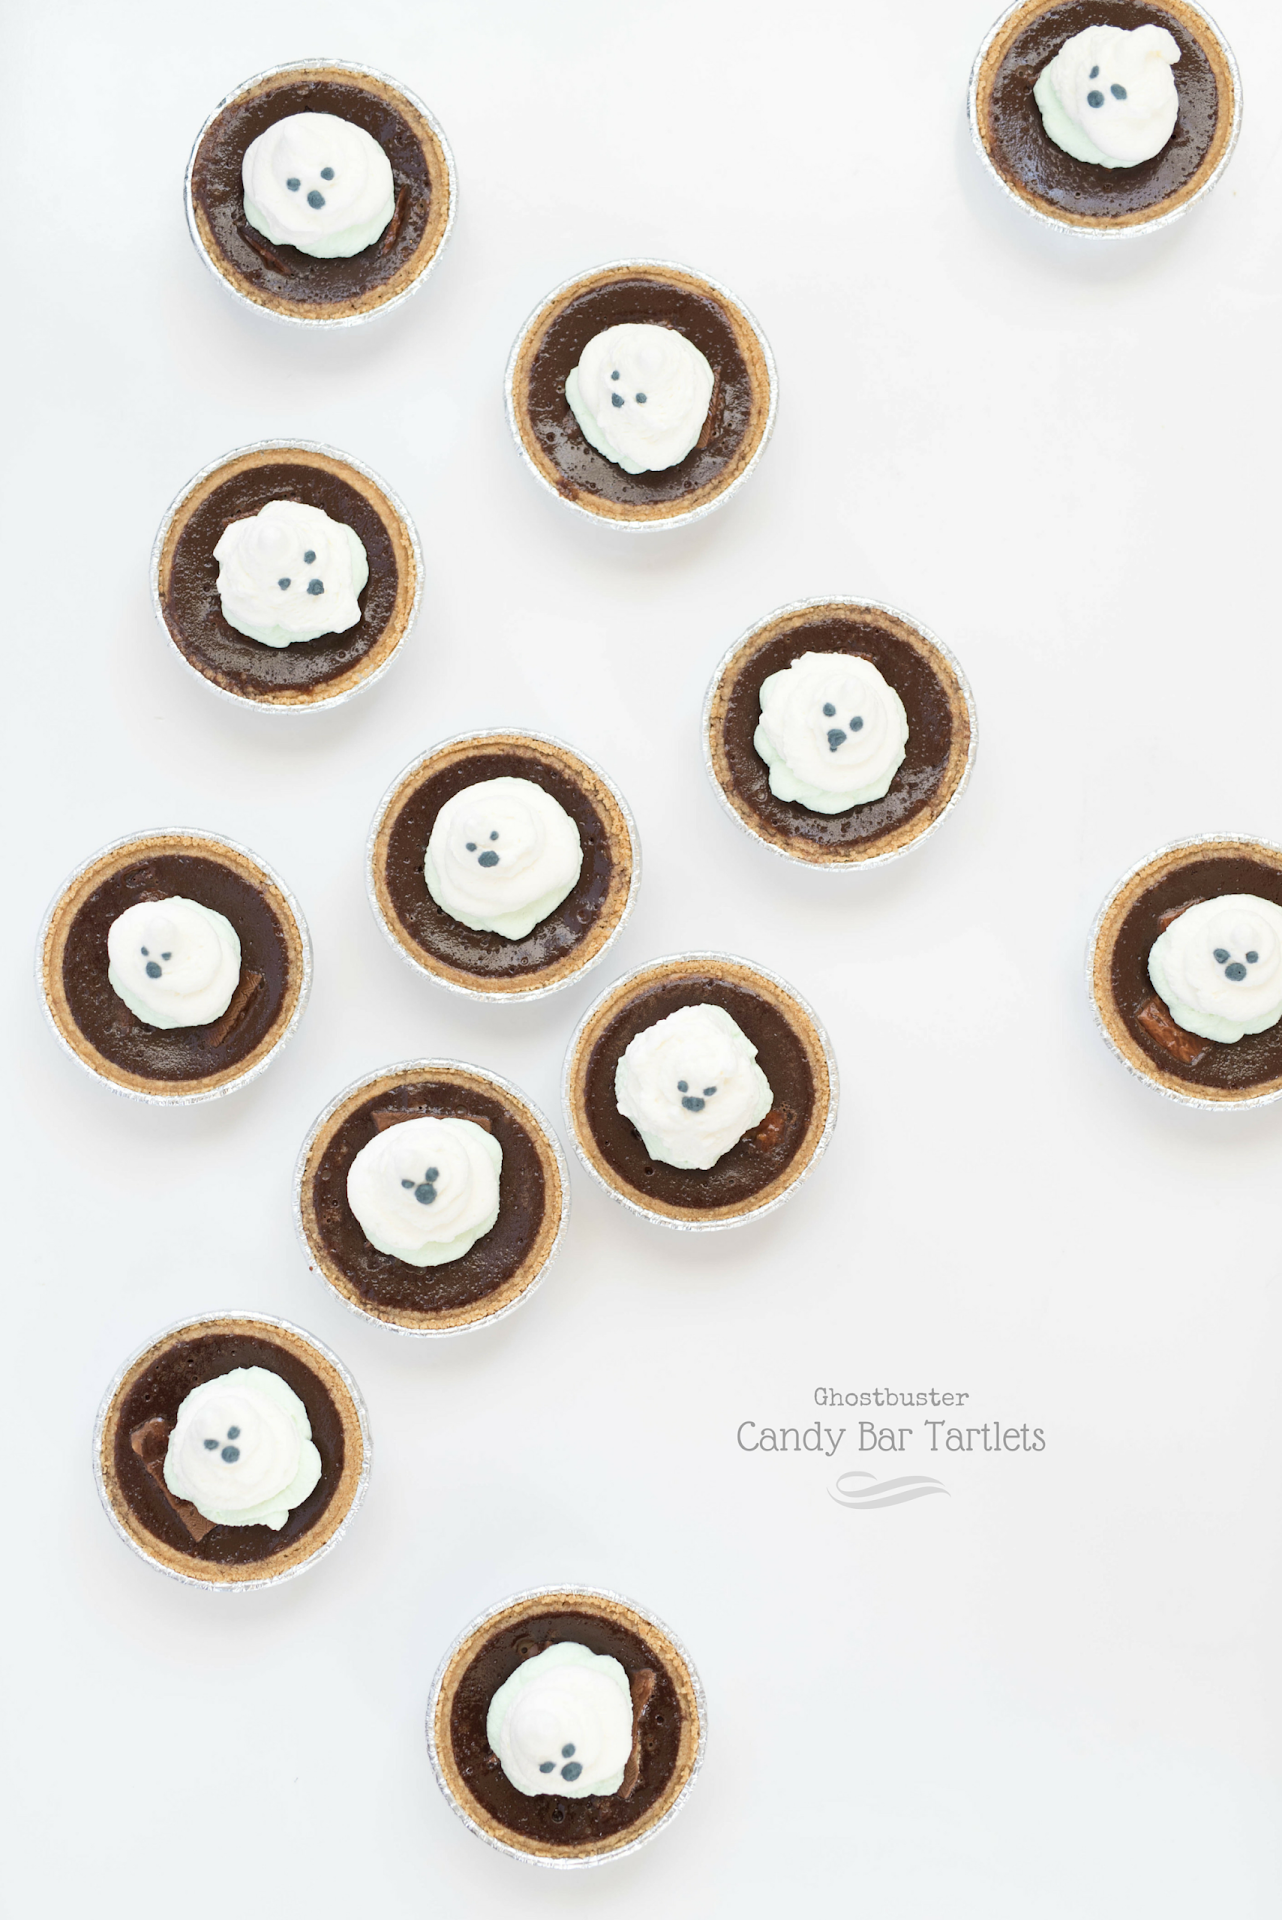 mini tarts recipe, chocolate tart, easy tart recipe, quick dessert, after school treats, ghostbuster dessert, ghostbuster party food ideas, ghost themed food,